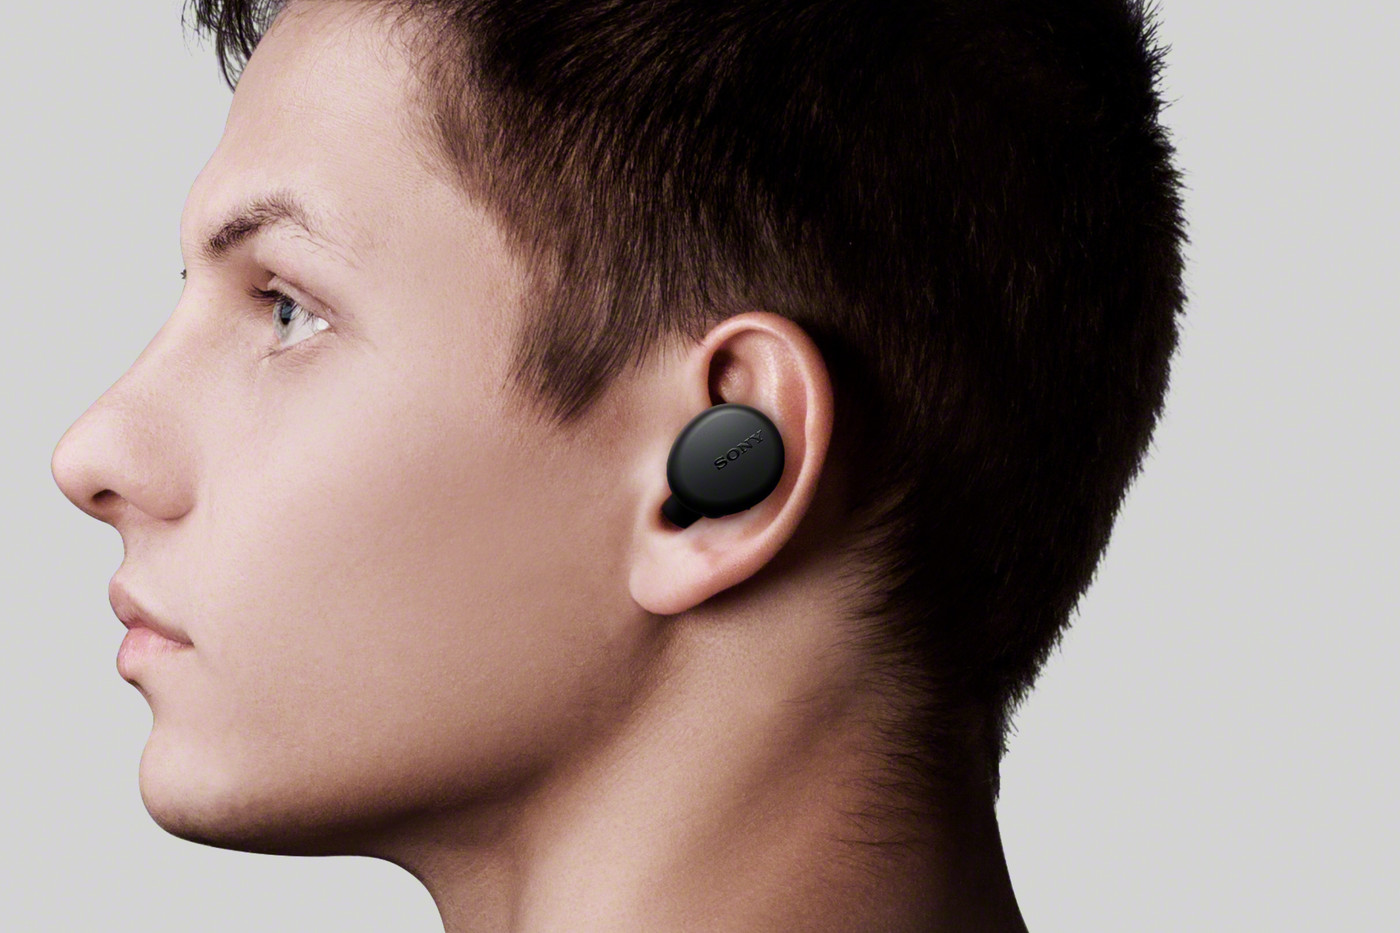 Sony S Latest True Wireless Earbuds Have Nine Hour Battery Life And Cost 129 99 The Verge